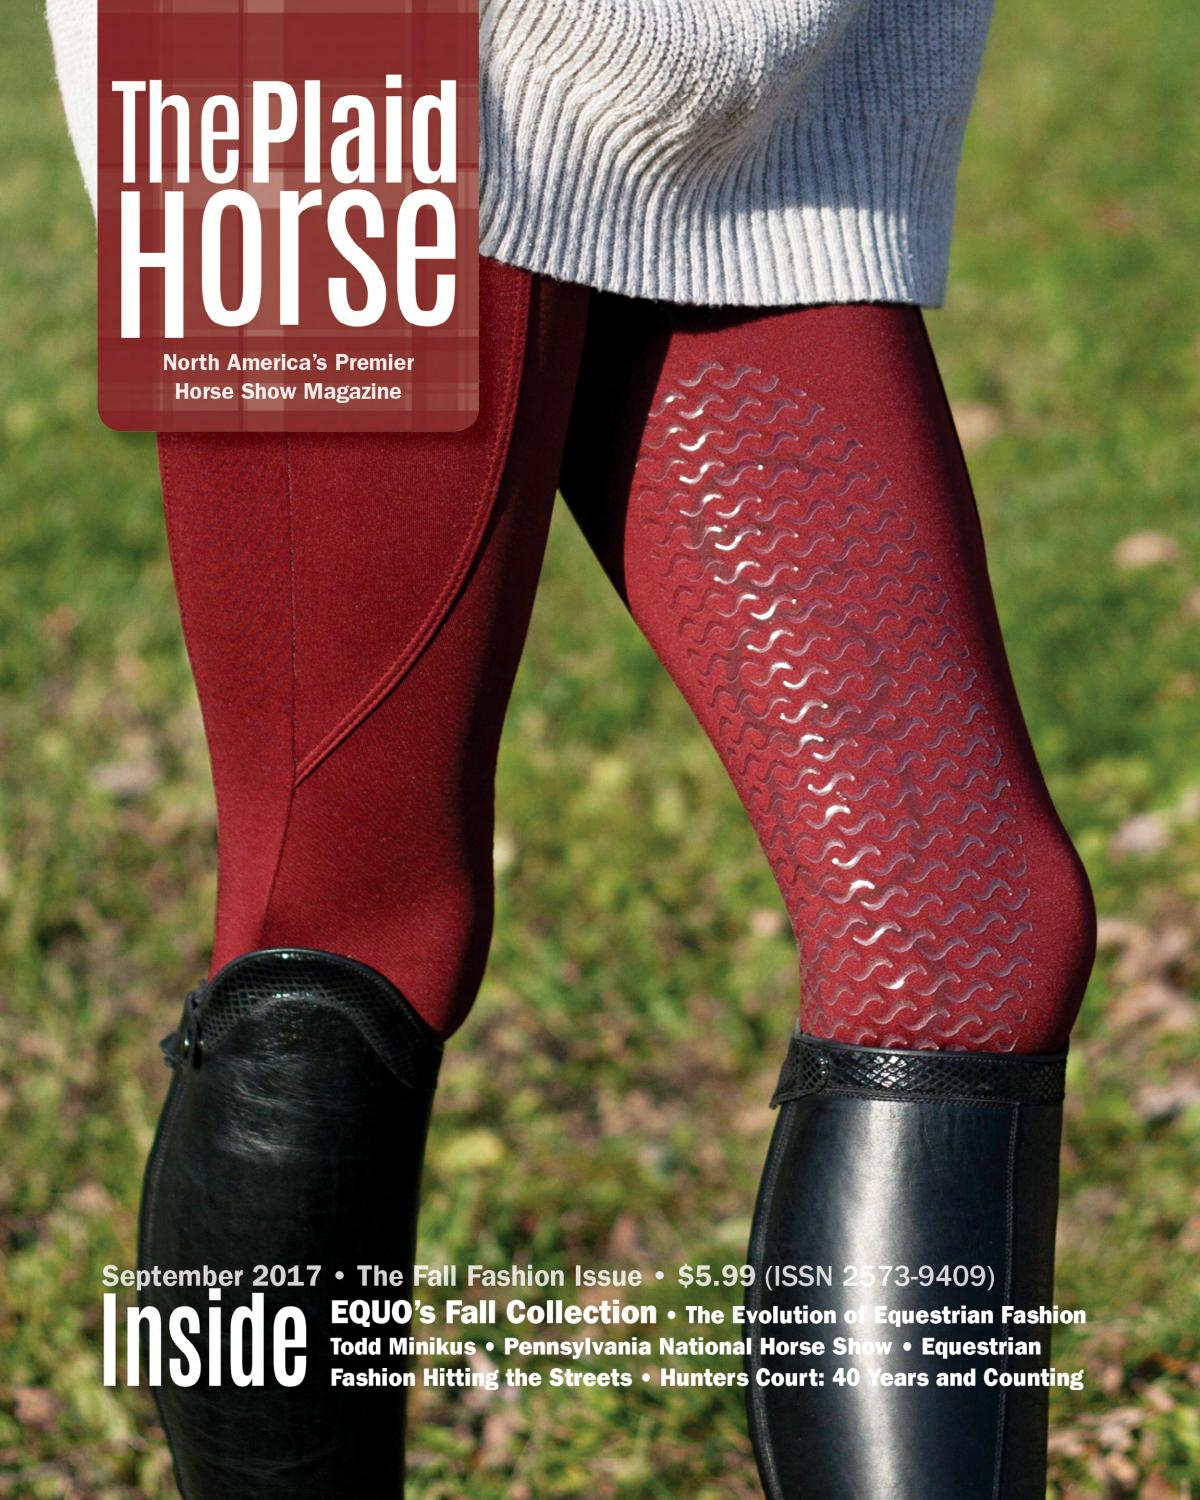 e68f8534a24 The Plaid Horse - September 2017 - The Fashion Issue by The Plaid Horse -  issuu